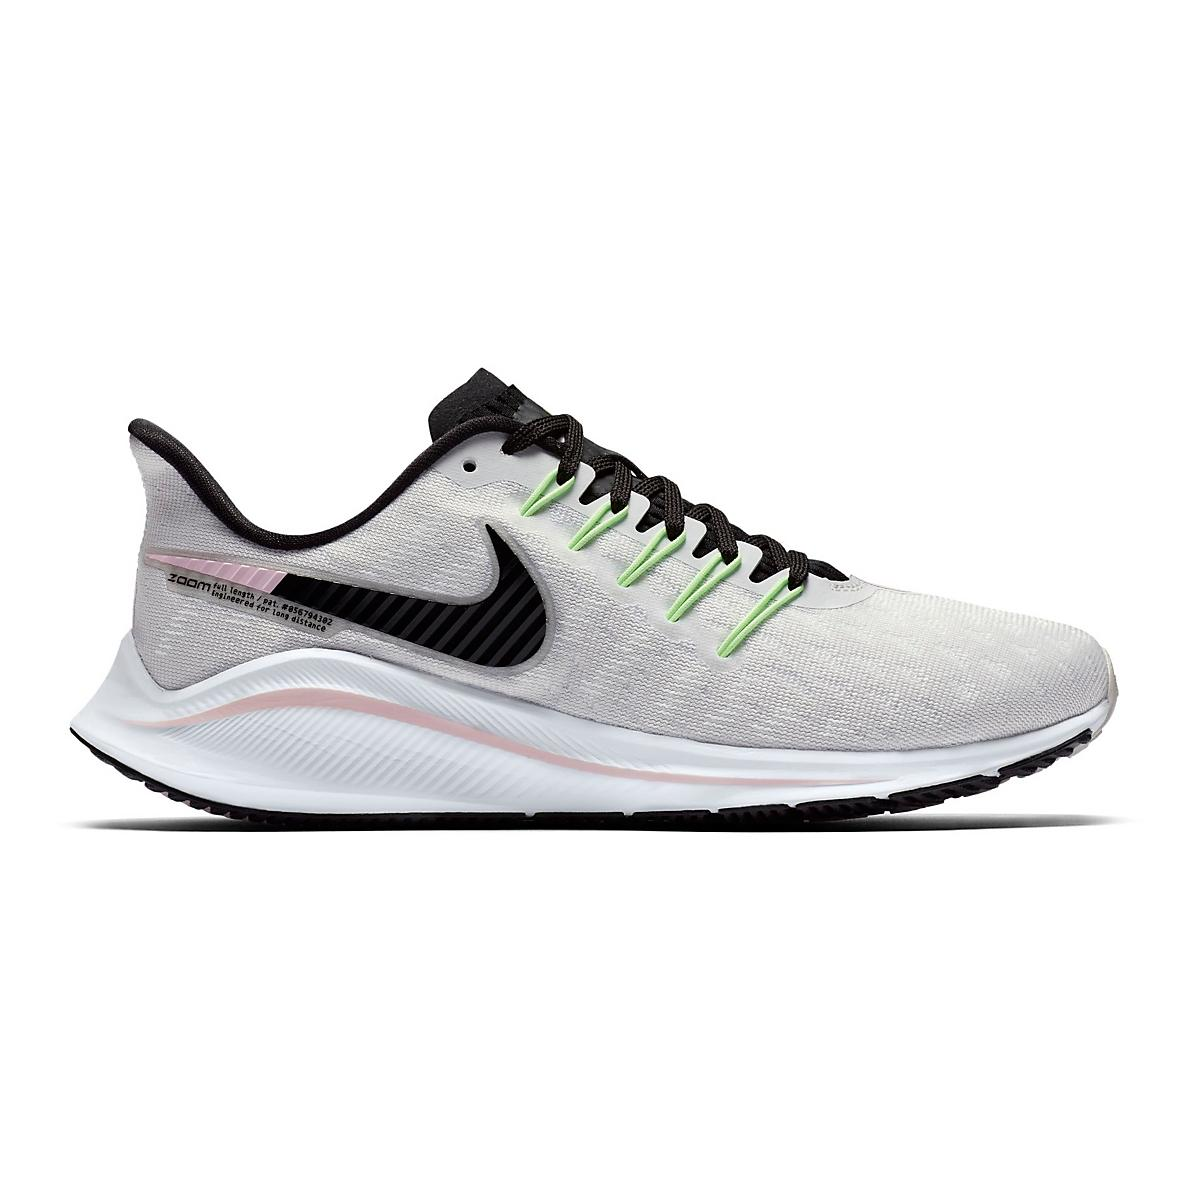 8f3bfb64515 Womens Nike Air Zoom Vomero 14 Running Shoe at Road Runner Sports